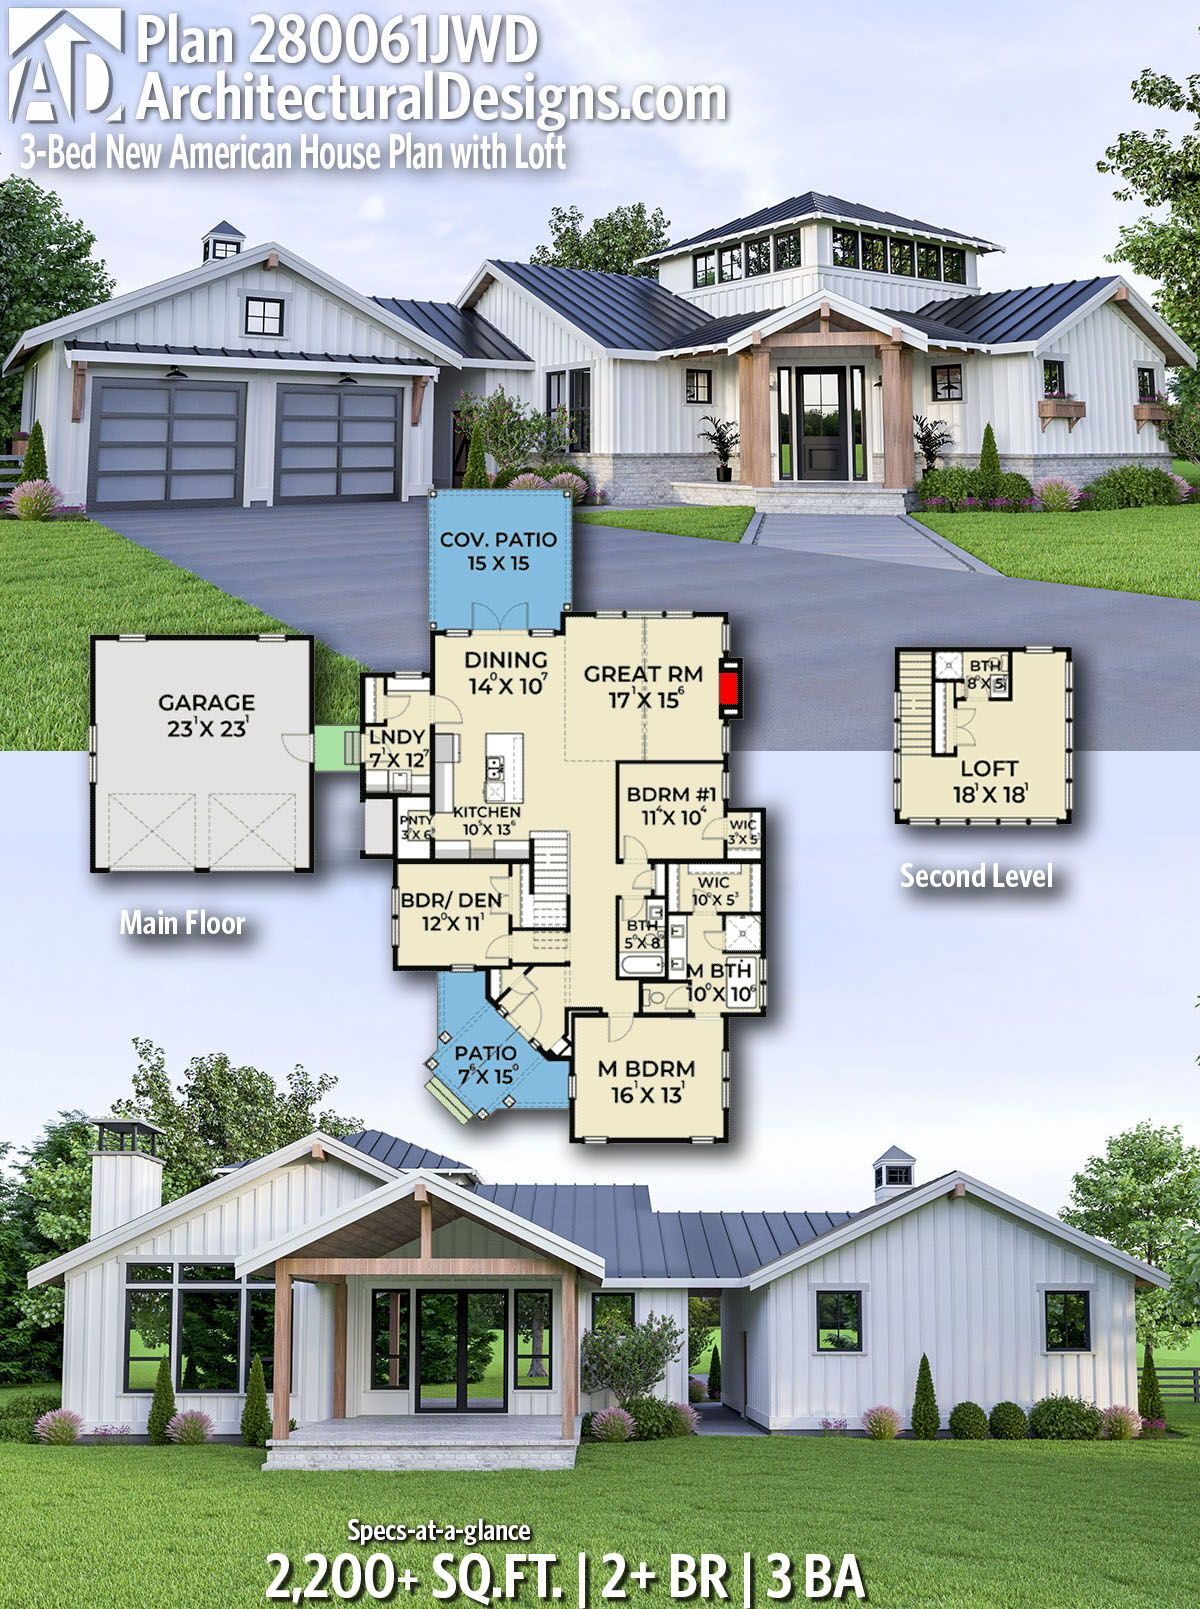 Plan 280061jwd 3 Bed New American House Plan With Loft House Plan With Loft House Plans Architectural Design House Plans